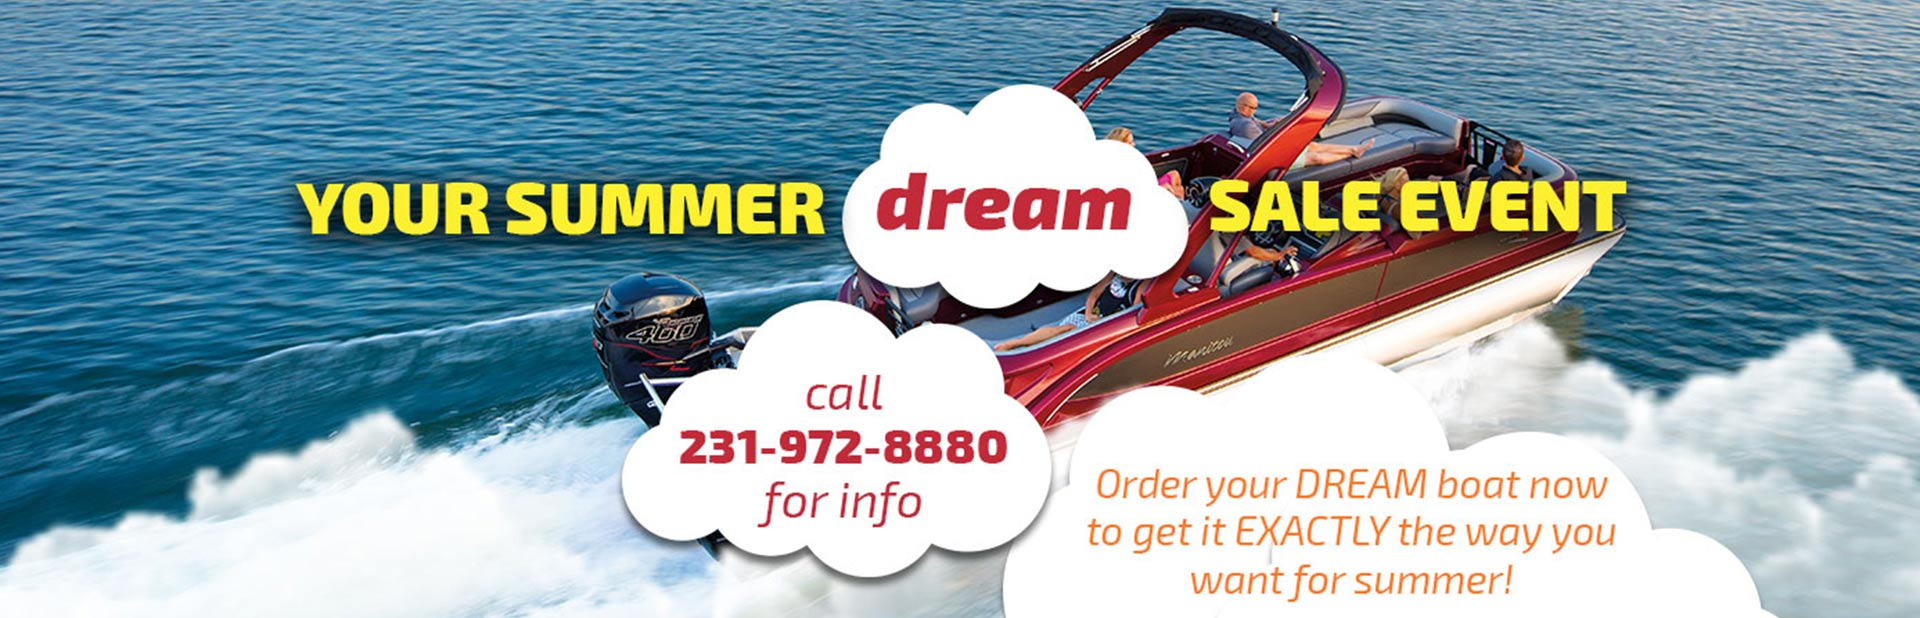 Your Summer Dream Sale Event